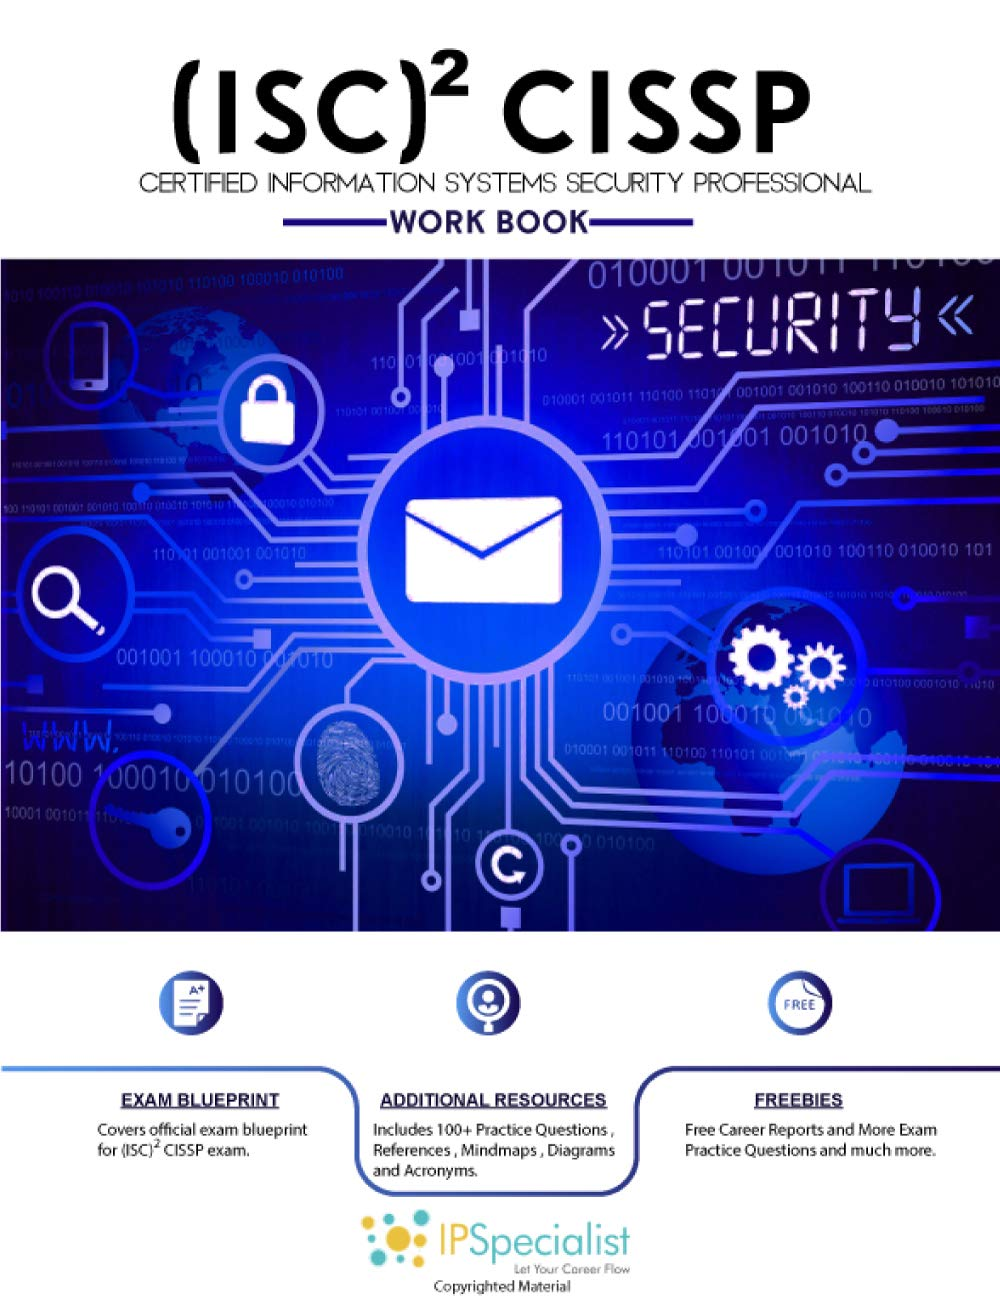 ISC)2 CISSP Certified Information Systems Security